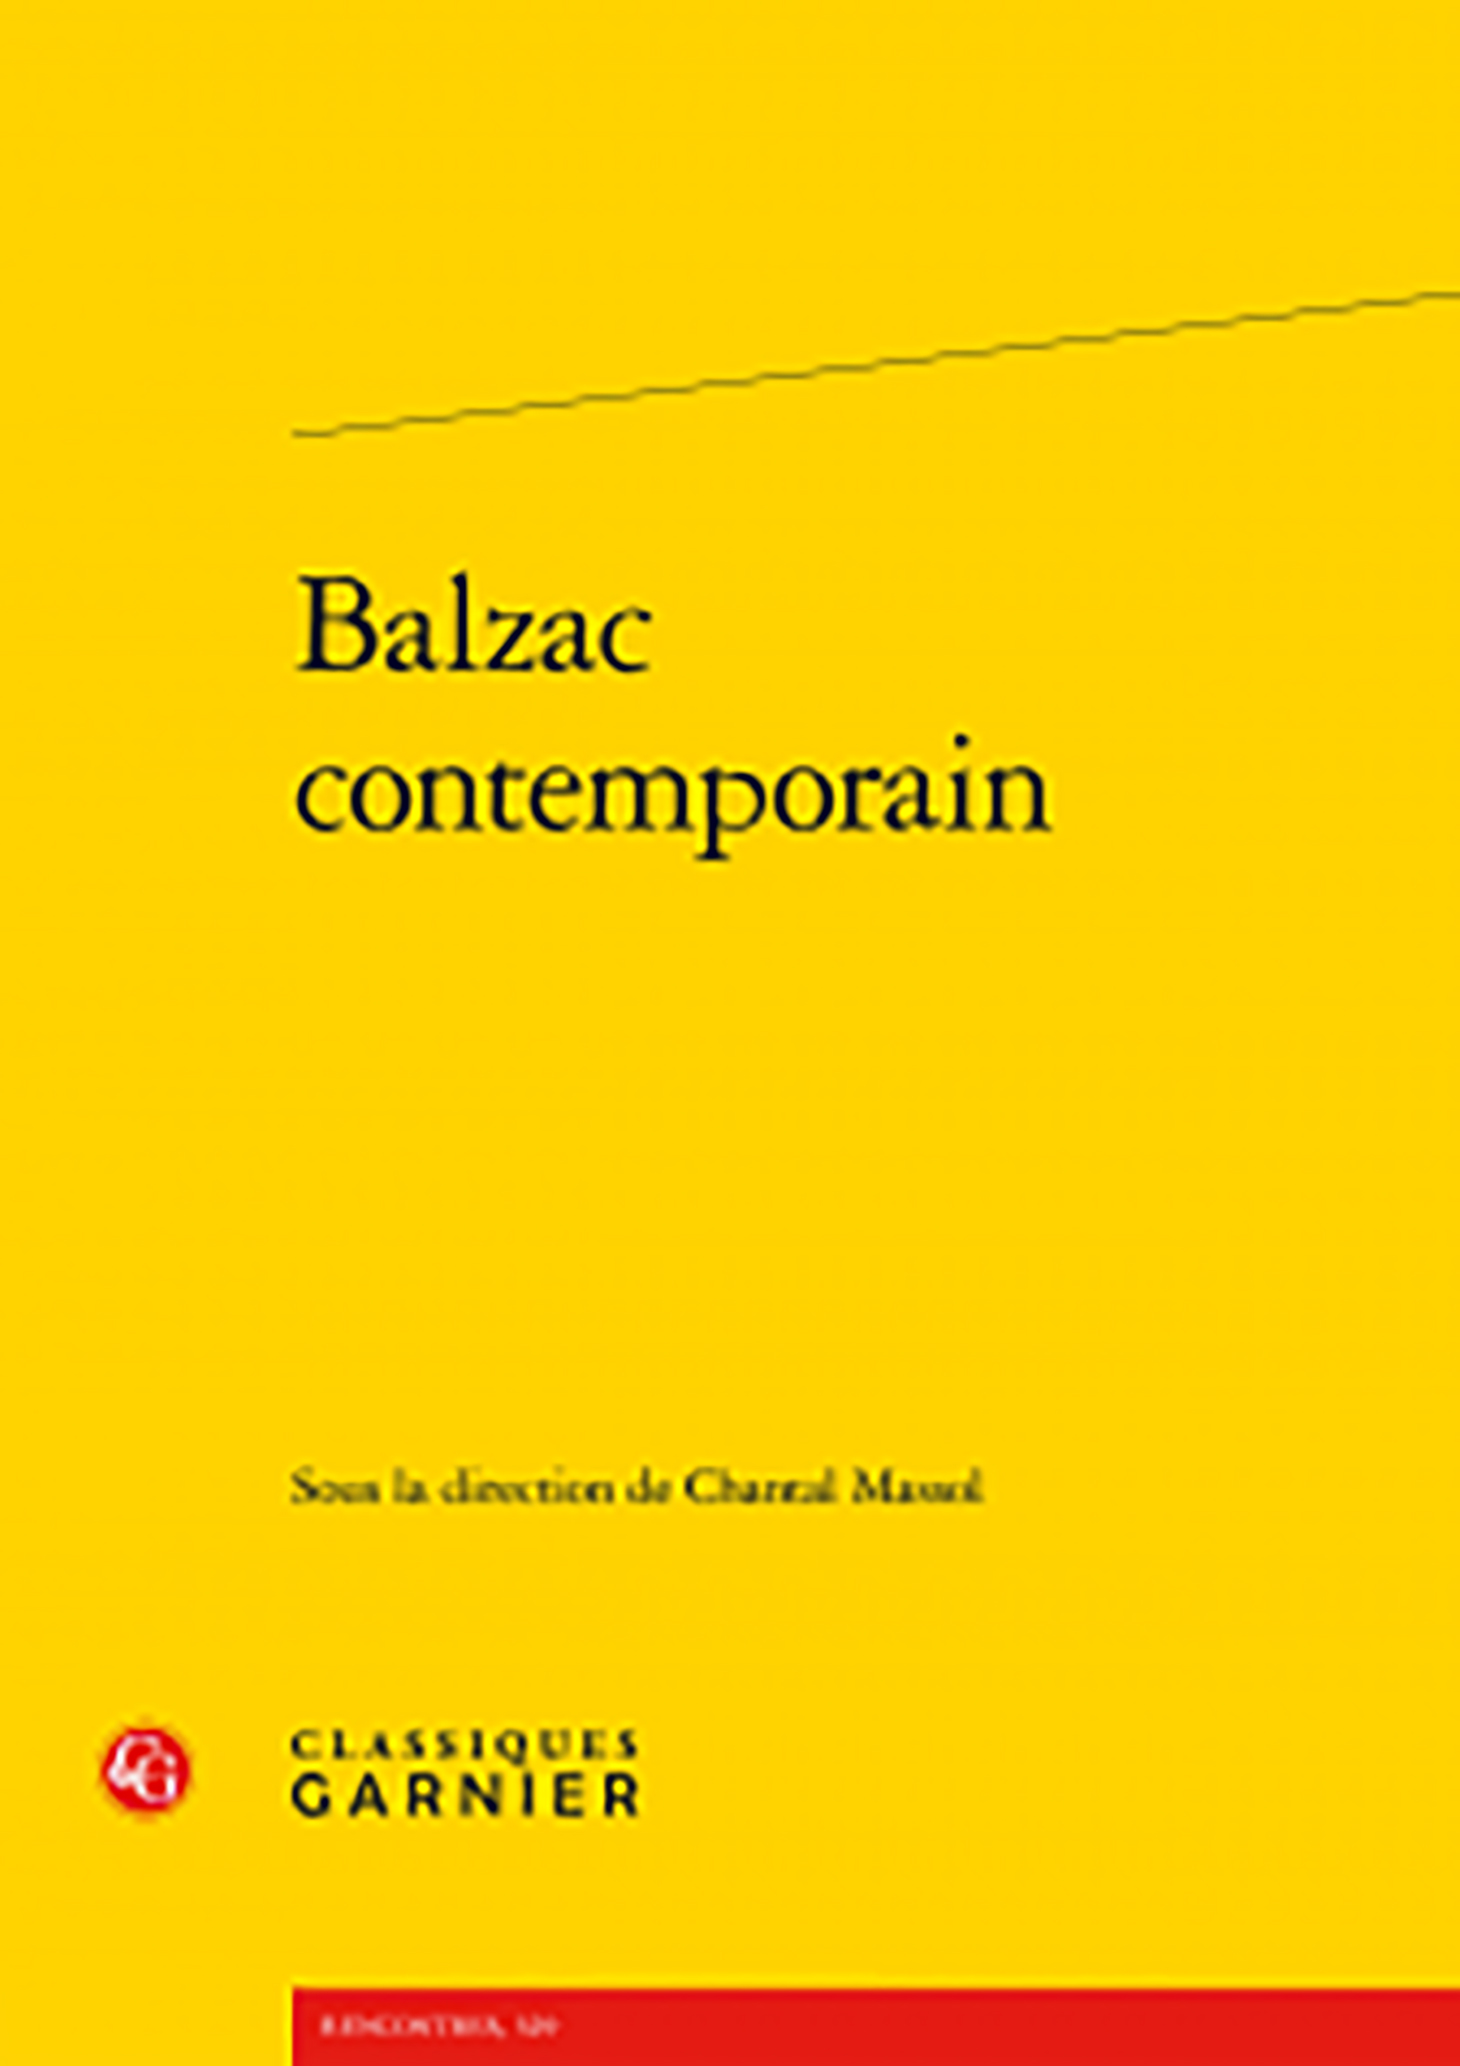 couverture de Balzac contemporain sous la direction de Chantal Massol